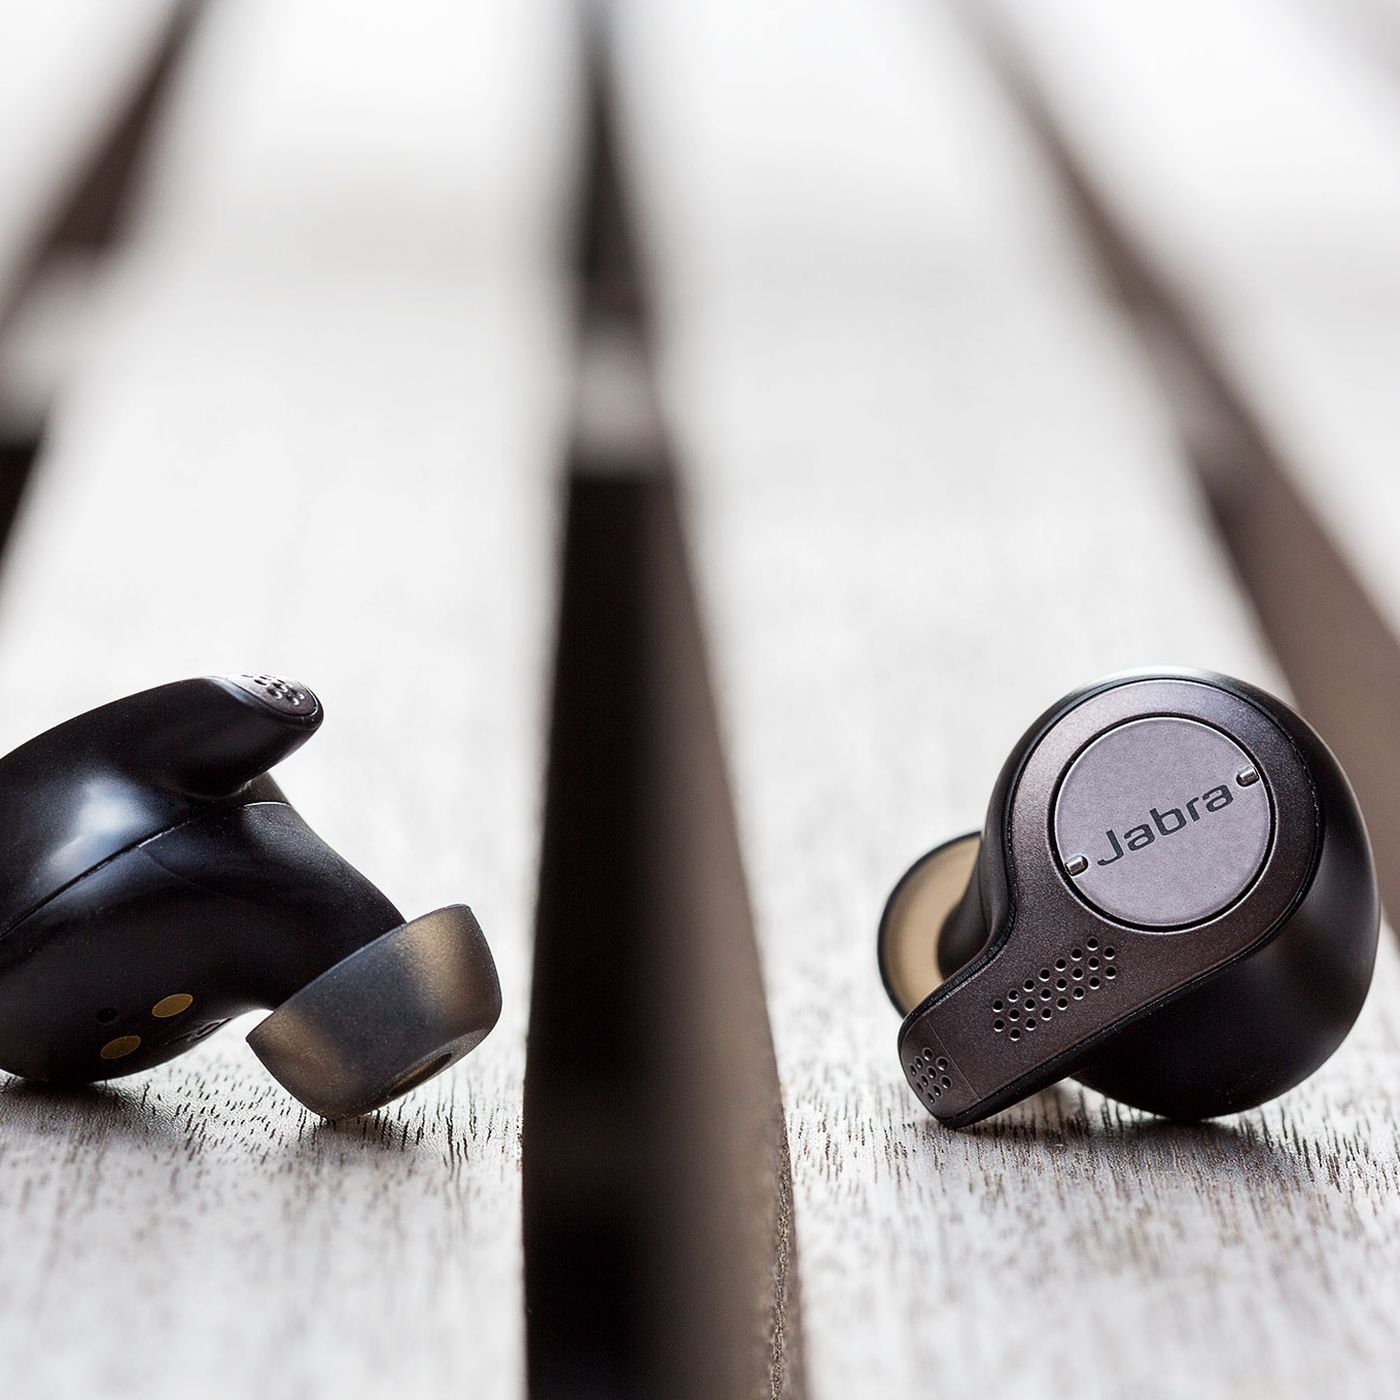 Save On Jabra S Elite 65t Truly Wireless Earbuds White Noise Machines And More The Verge